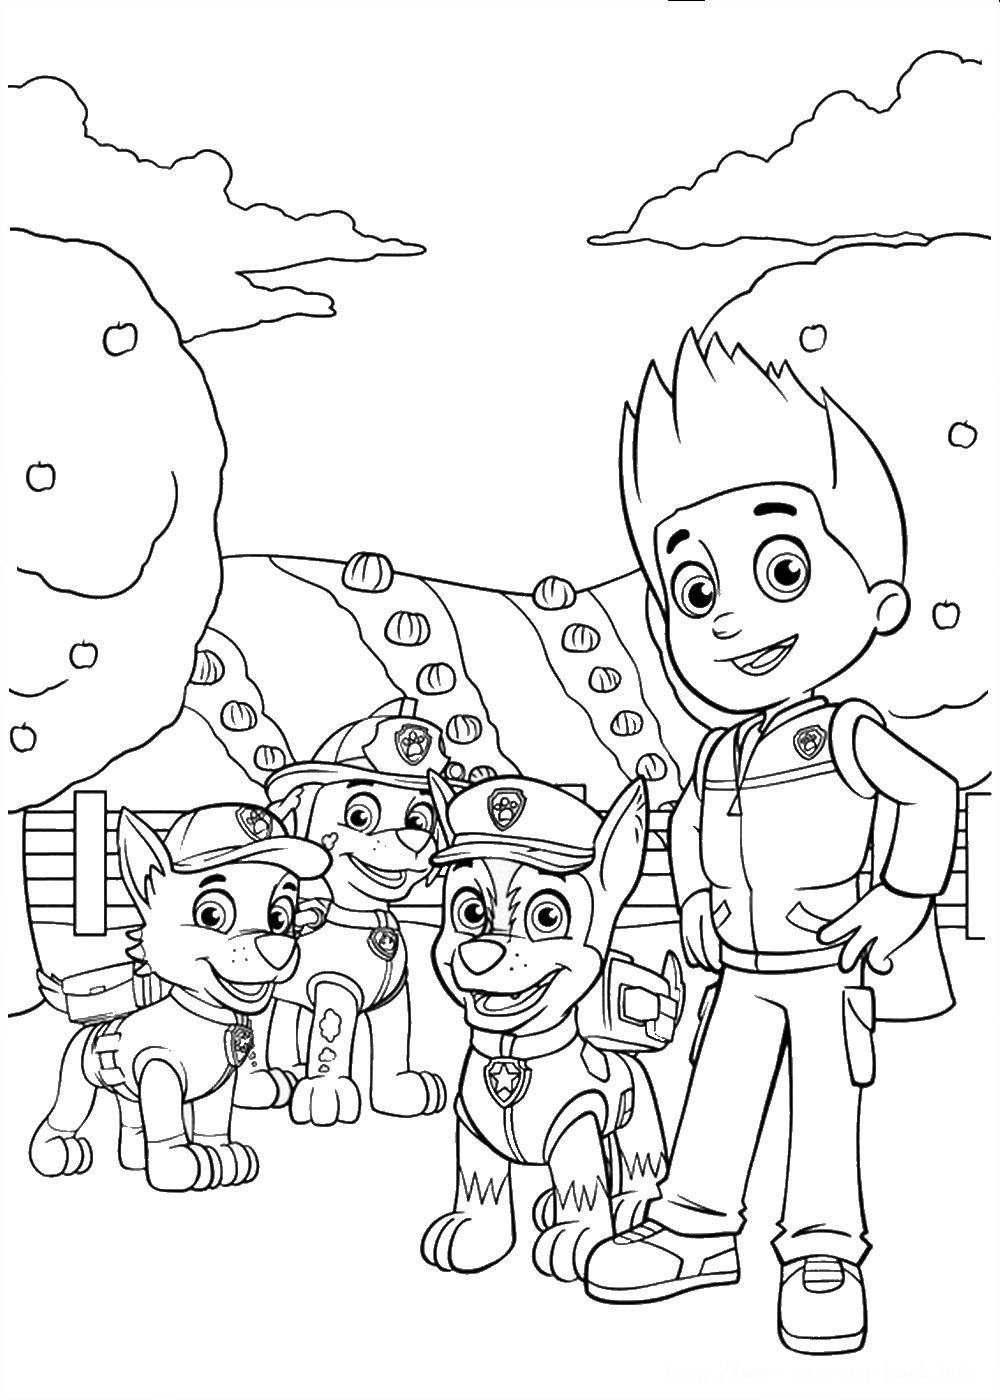 print paw patrol coloring pages paw patrol coloring pages printable free coloring sheets patrol paw coloring pages print